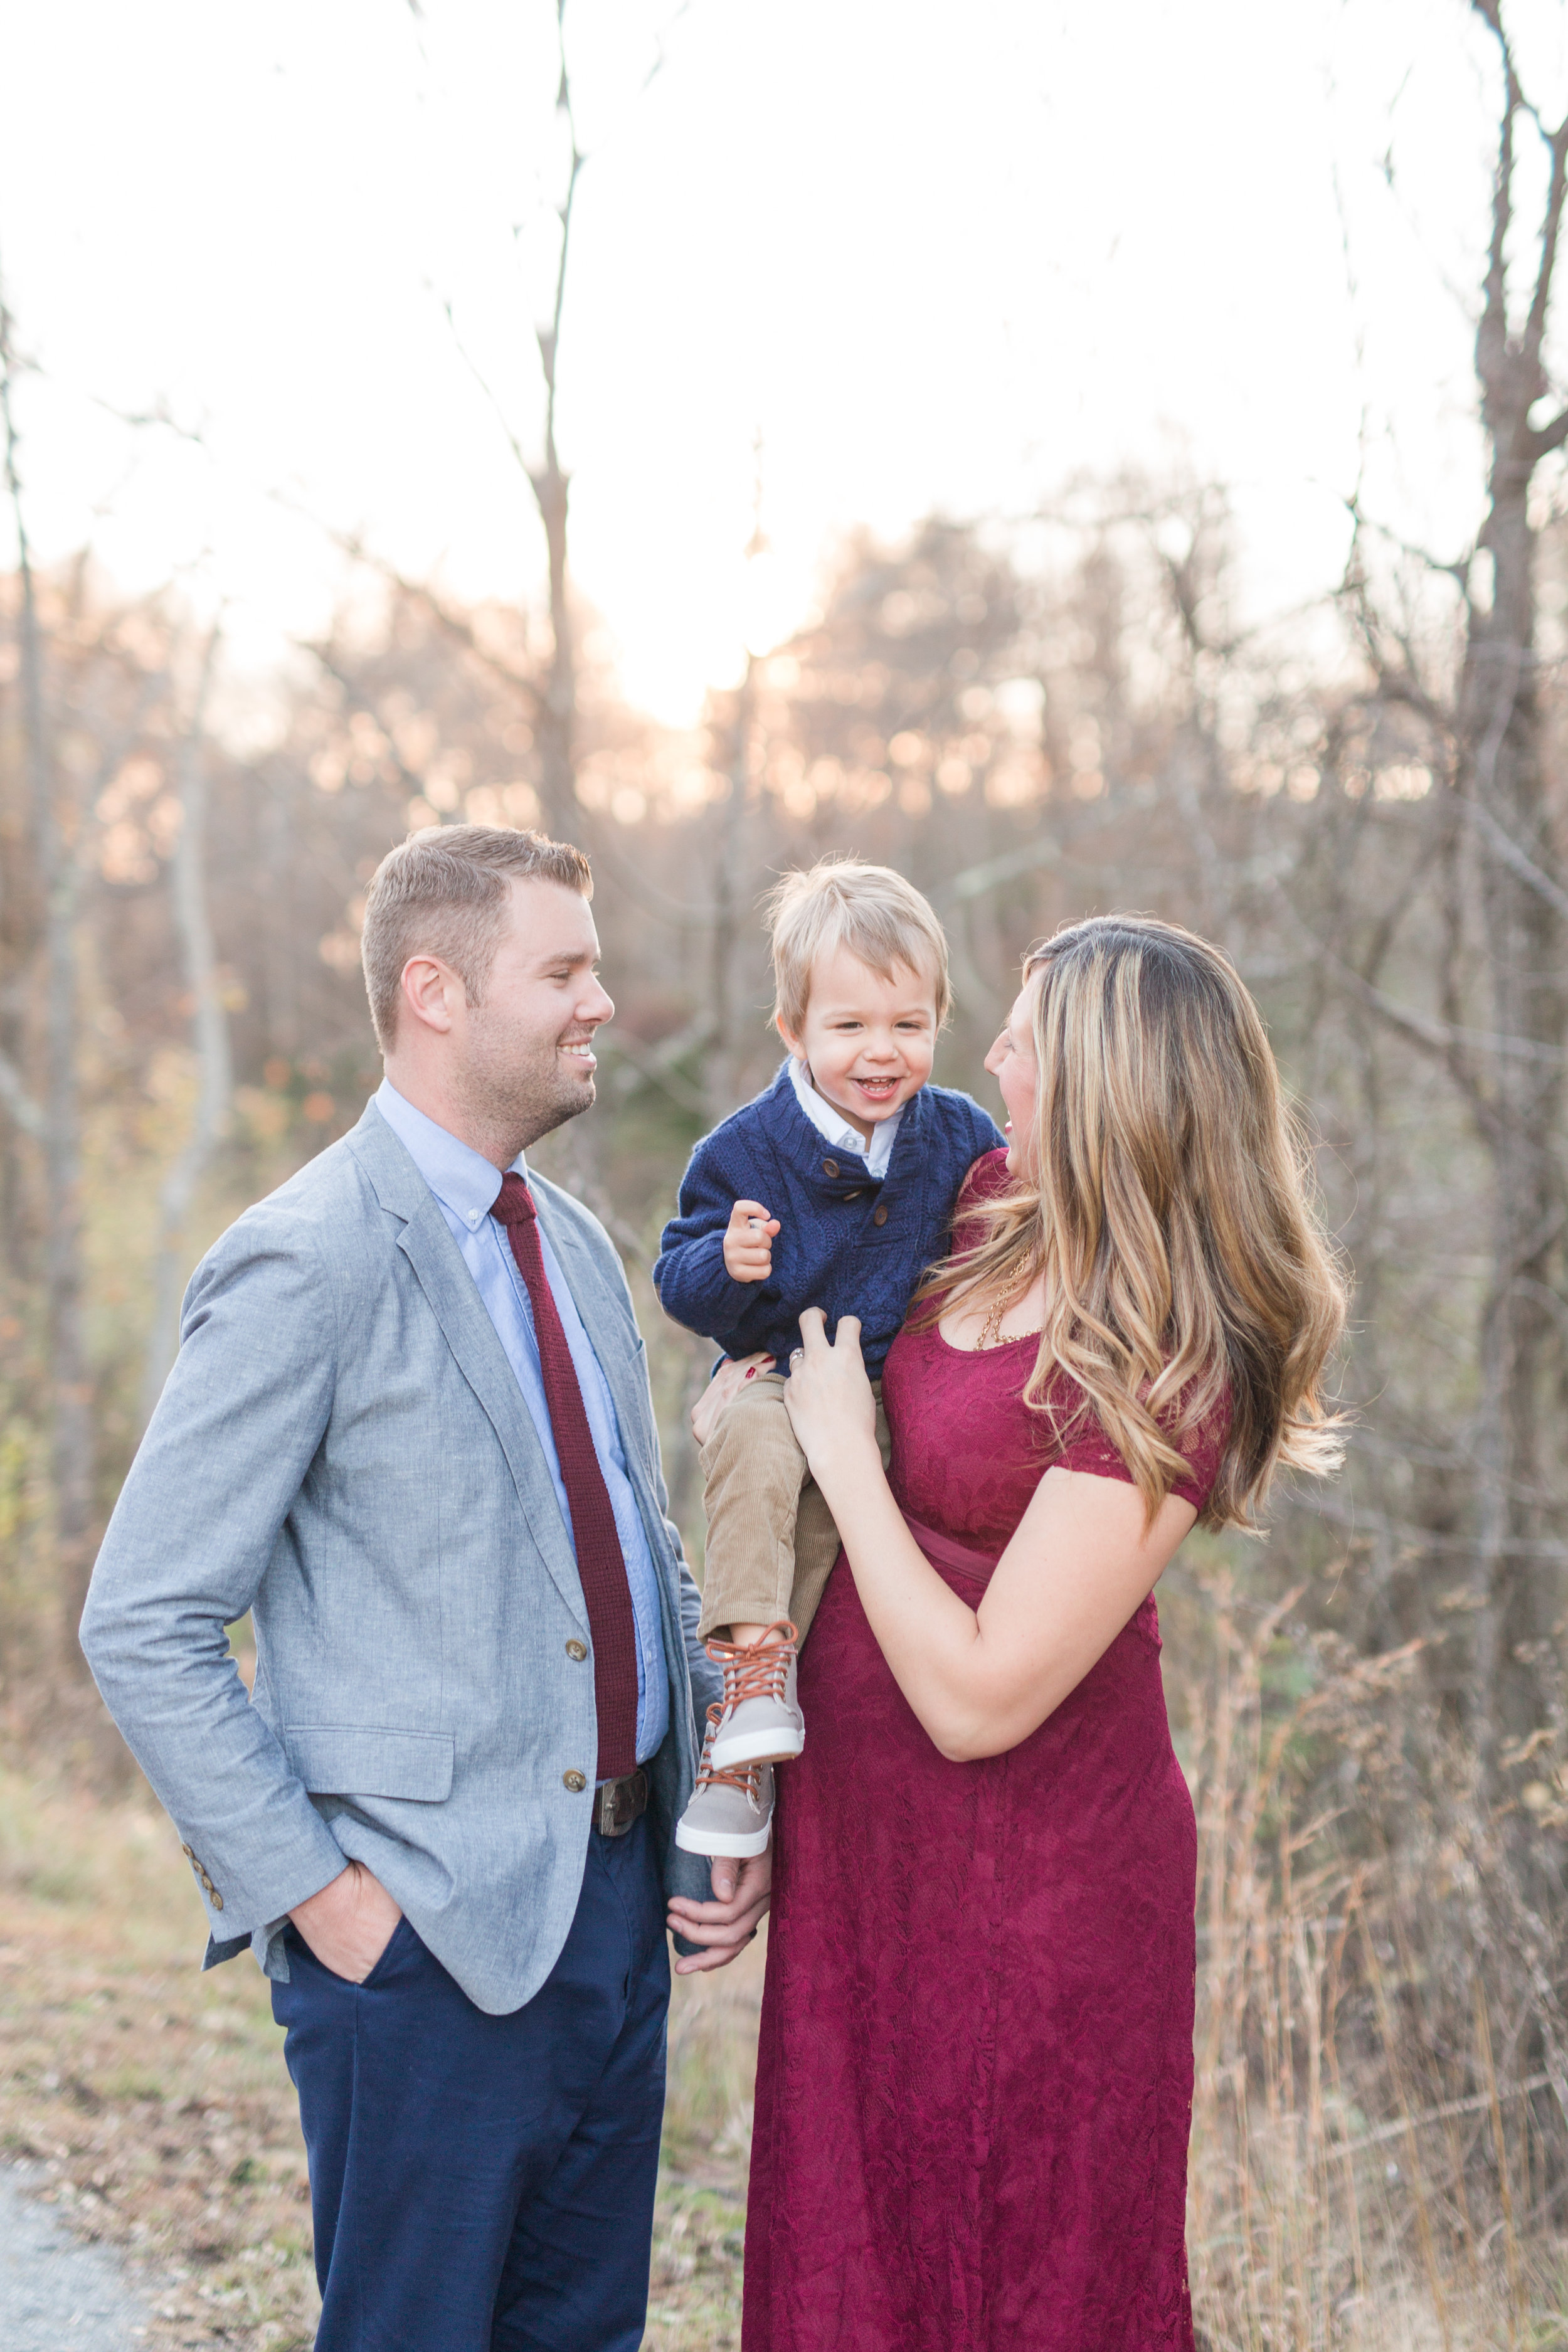 Lynchburg, Virginia Family and Maternity Photographer || Fall Maternity Session || Lynchburg and Charlottesville Wedding and Portrait Photographer || www.ashleyeiban.com